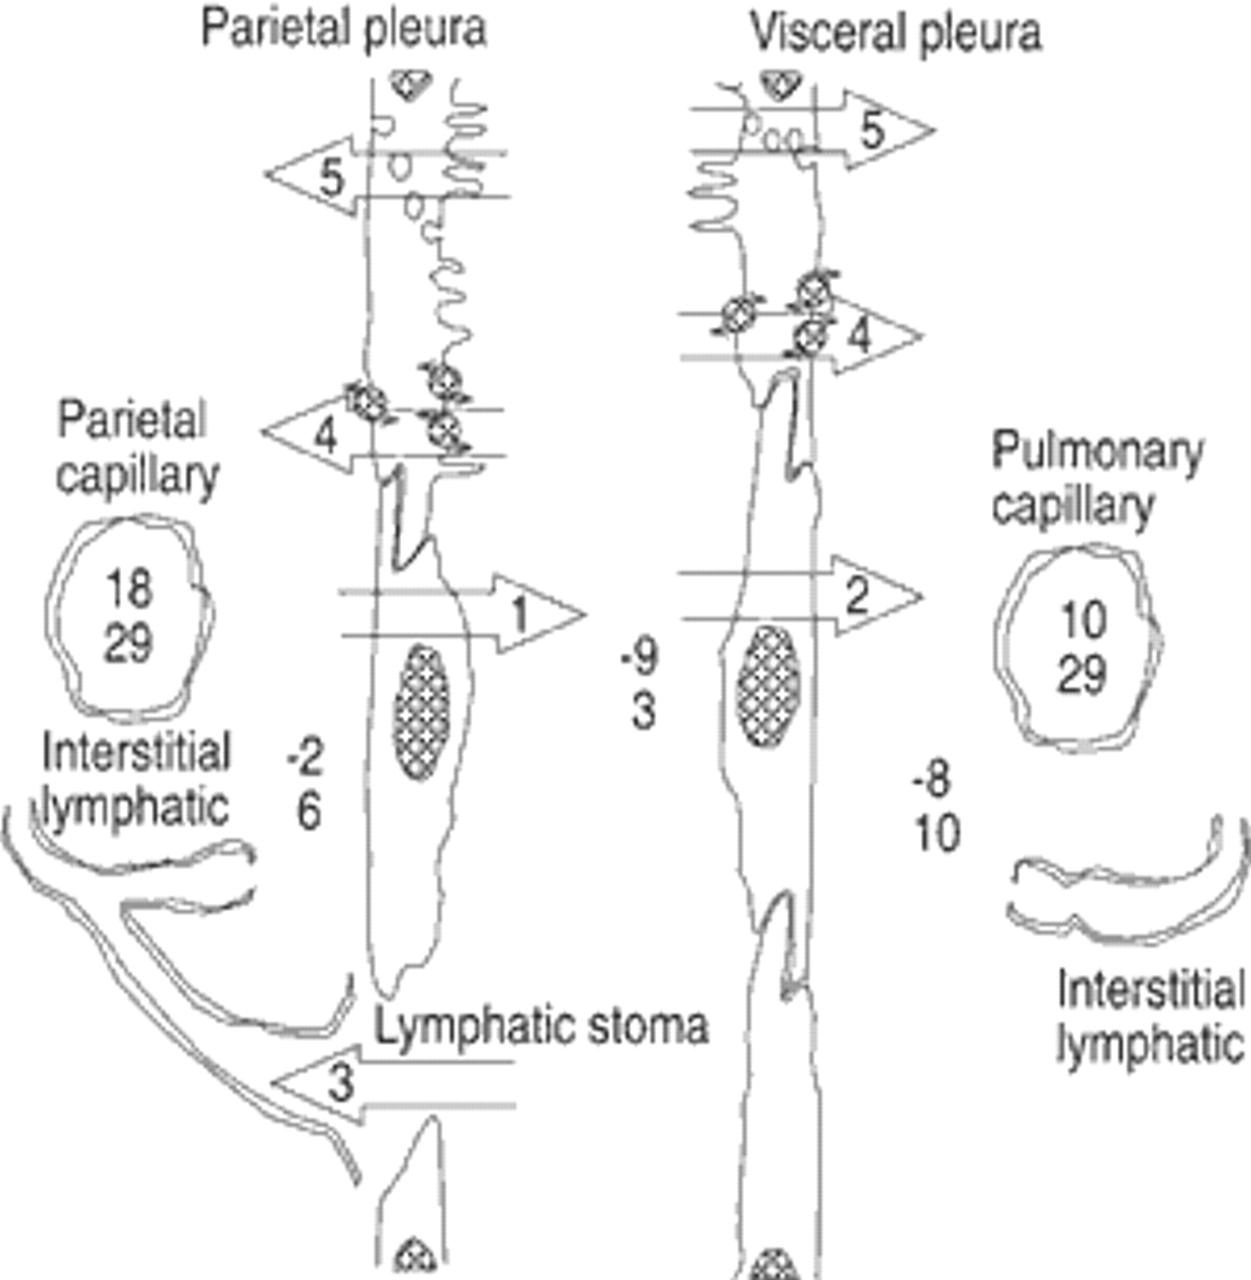 Physiology And Pathophysiology Of Pleural Fluid Turnover